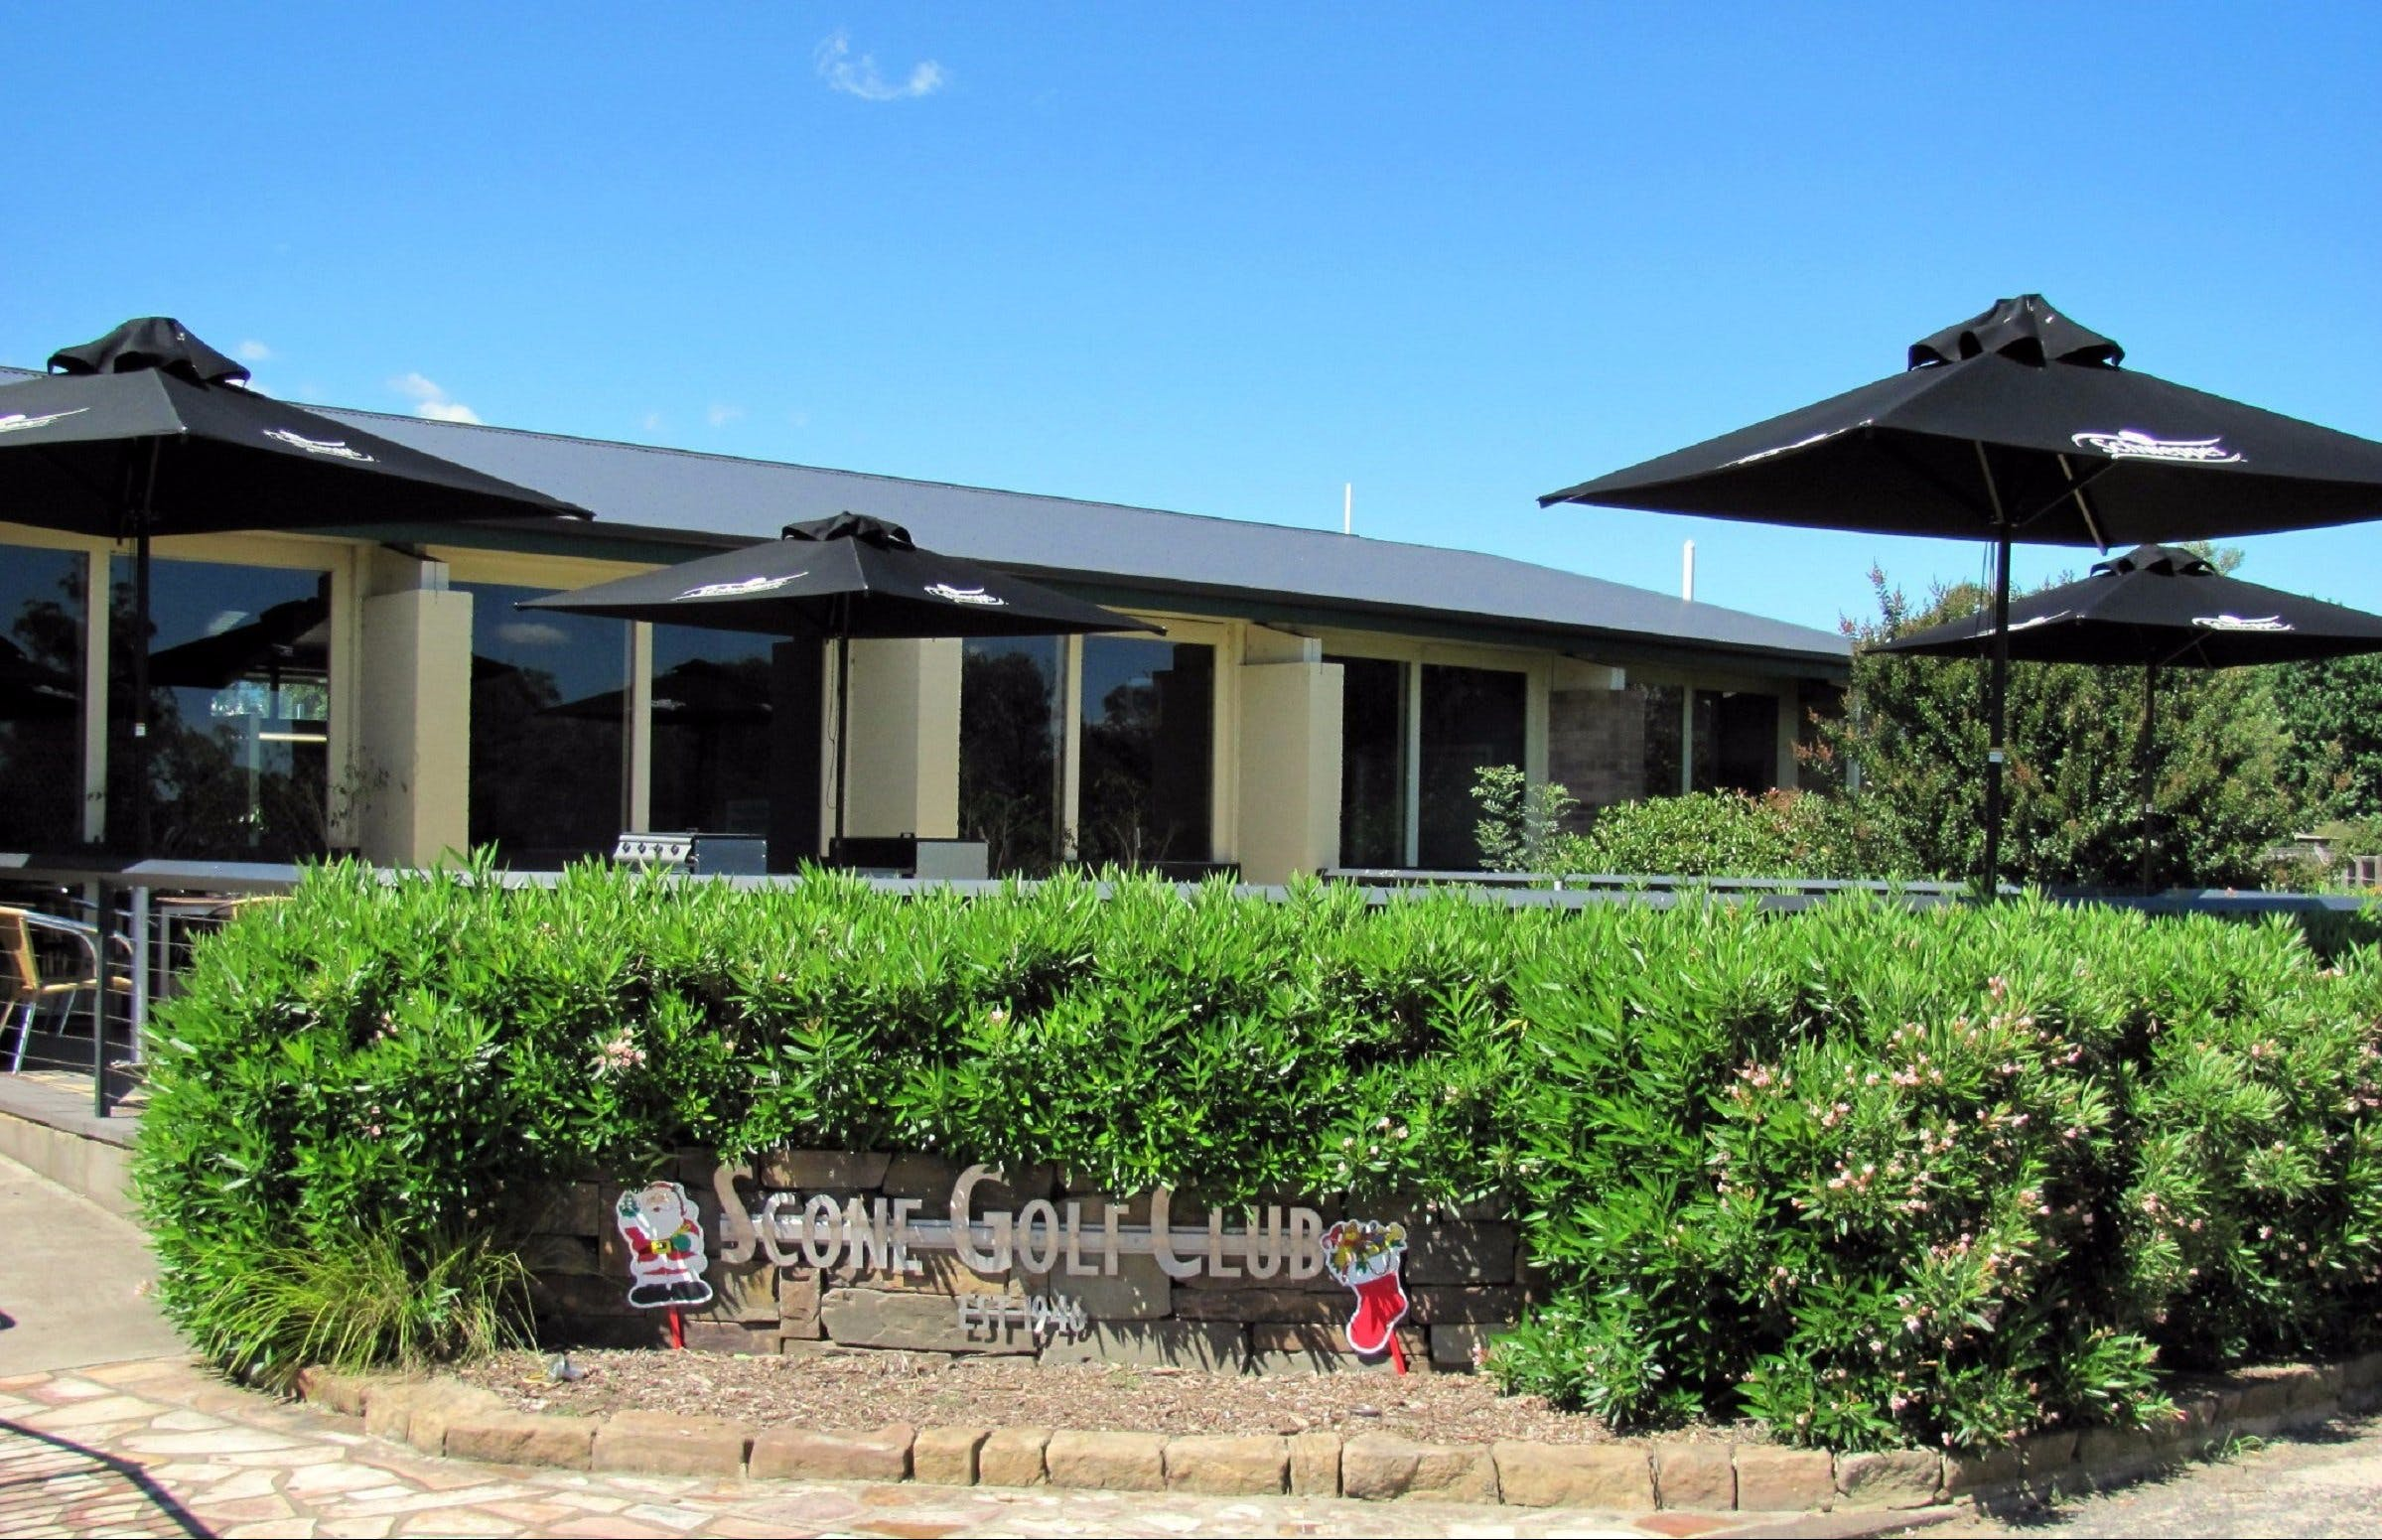 Scone Golf Club - Accommodation Cairns